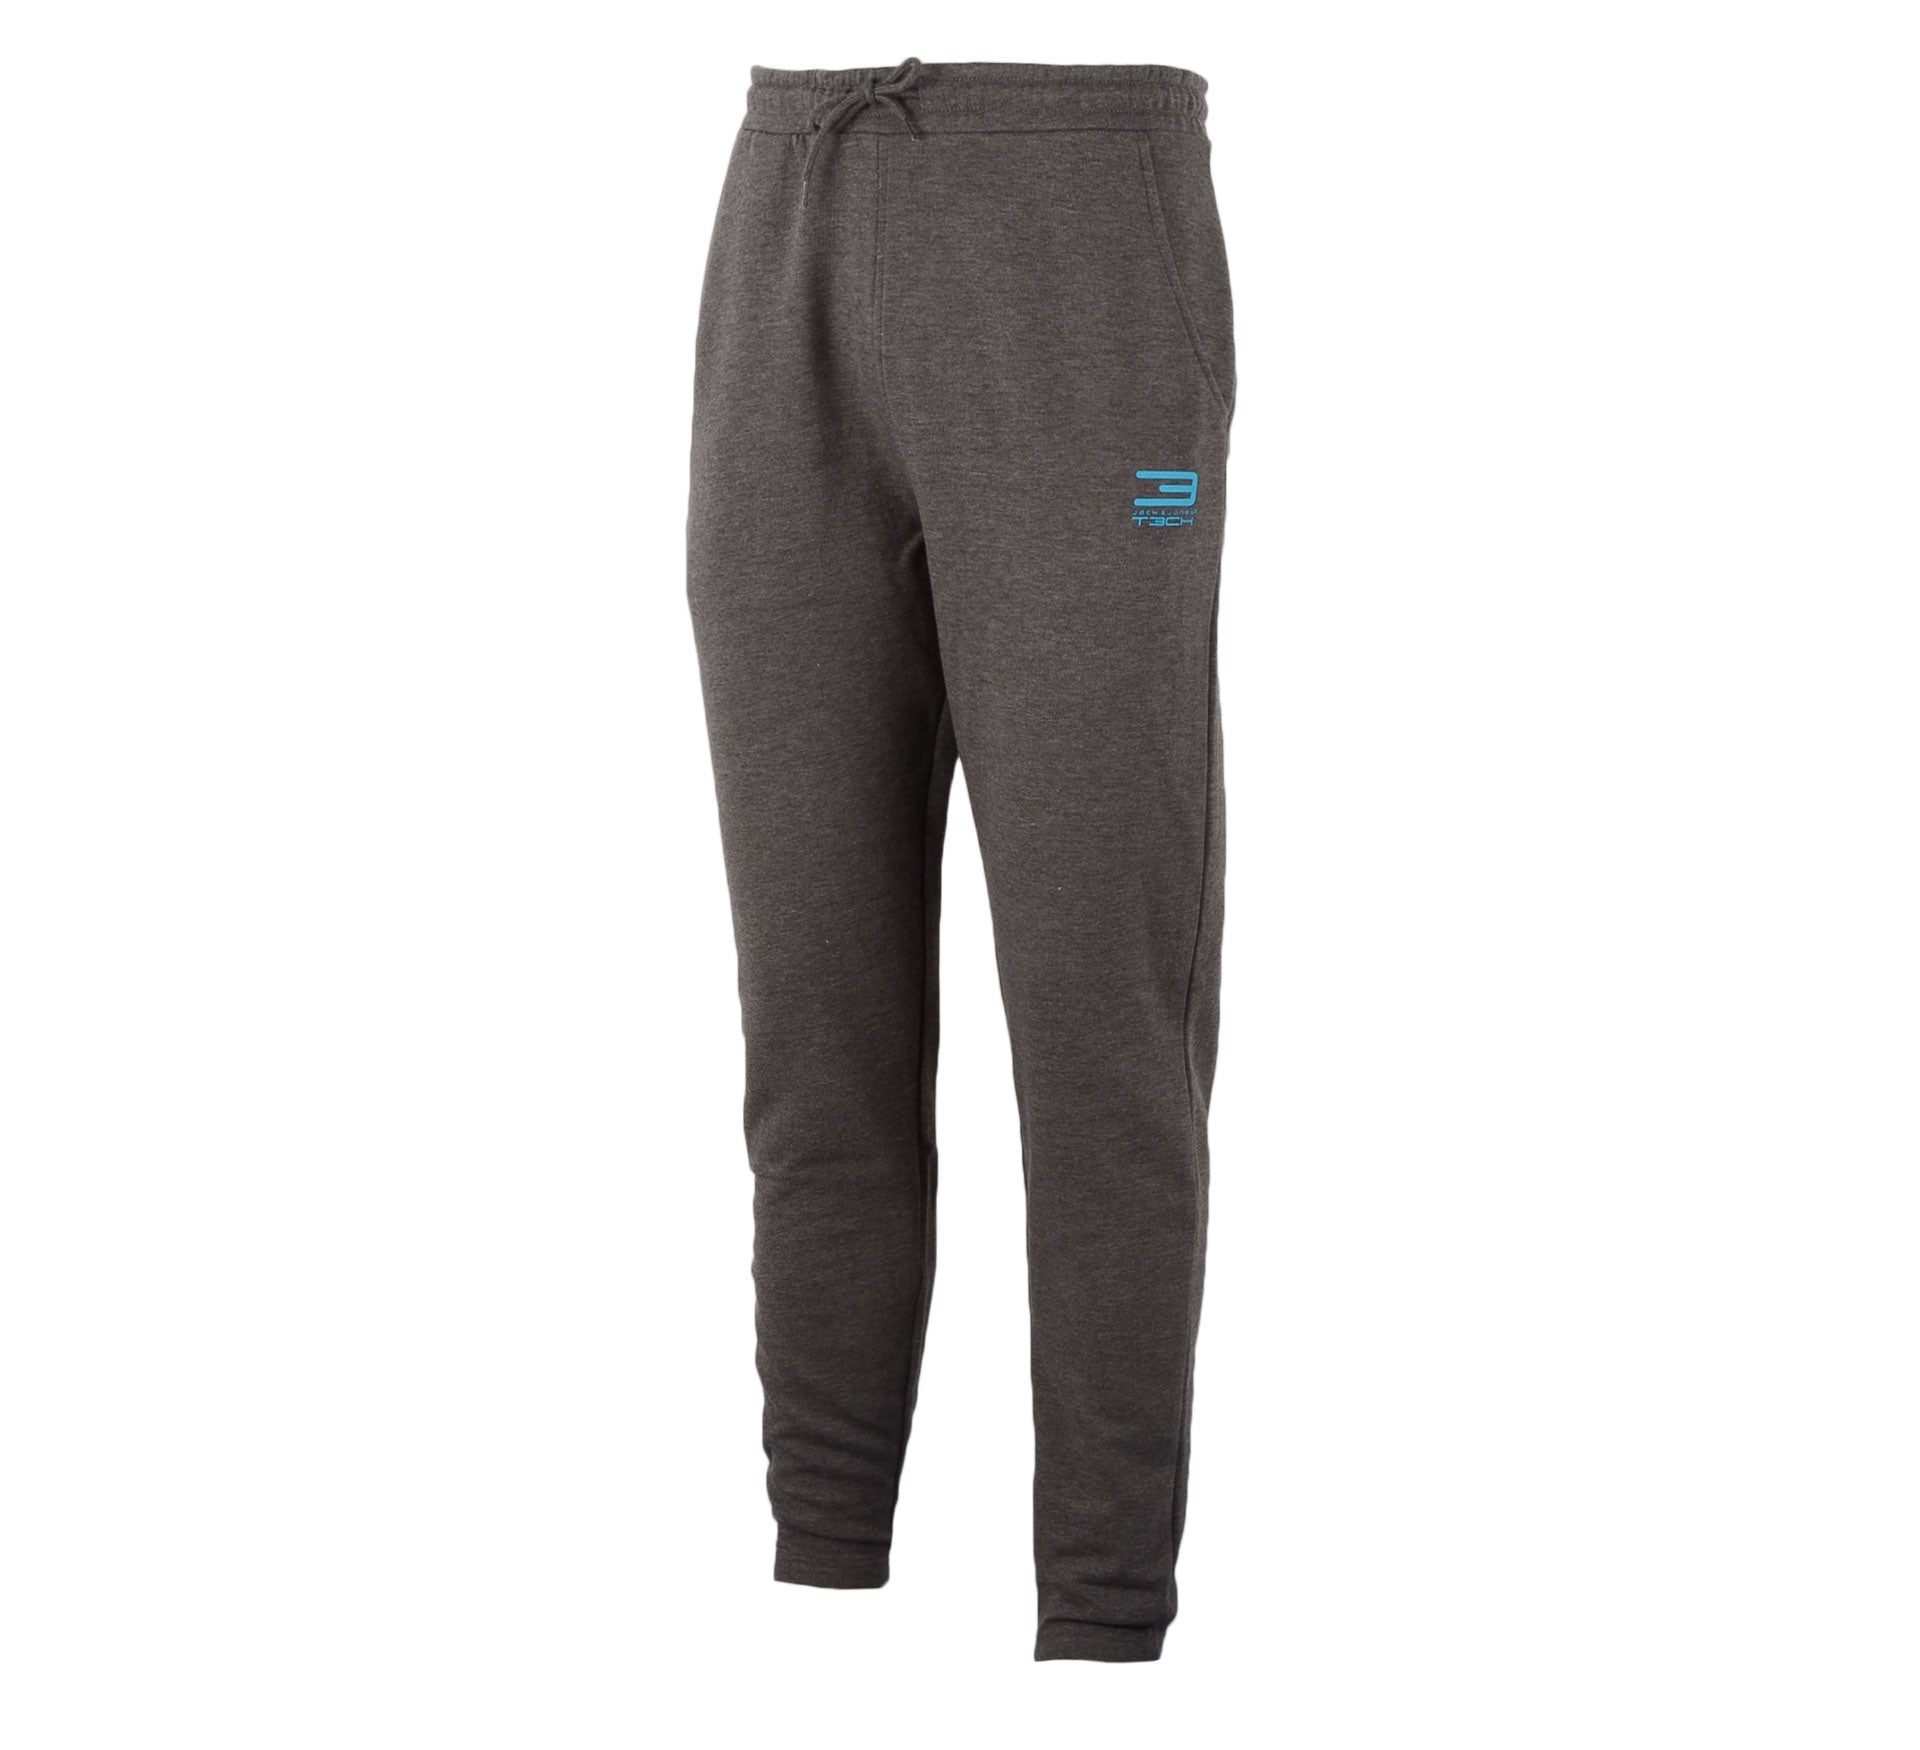 Pant-POKEN SWEAT PANT GREY MELANGE